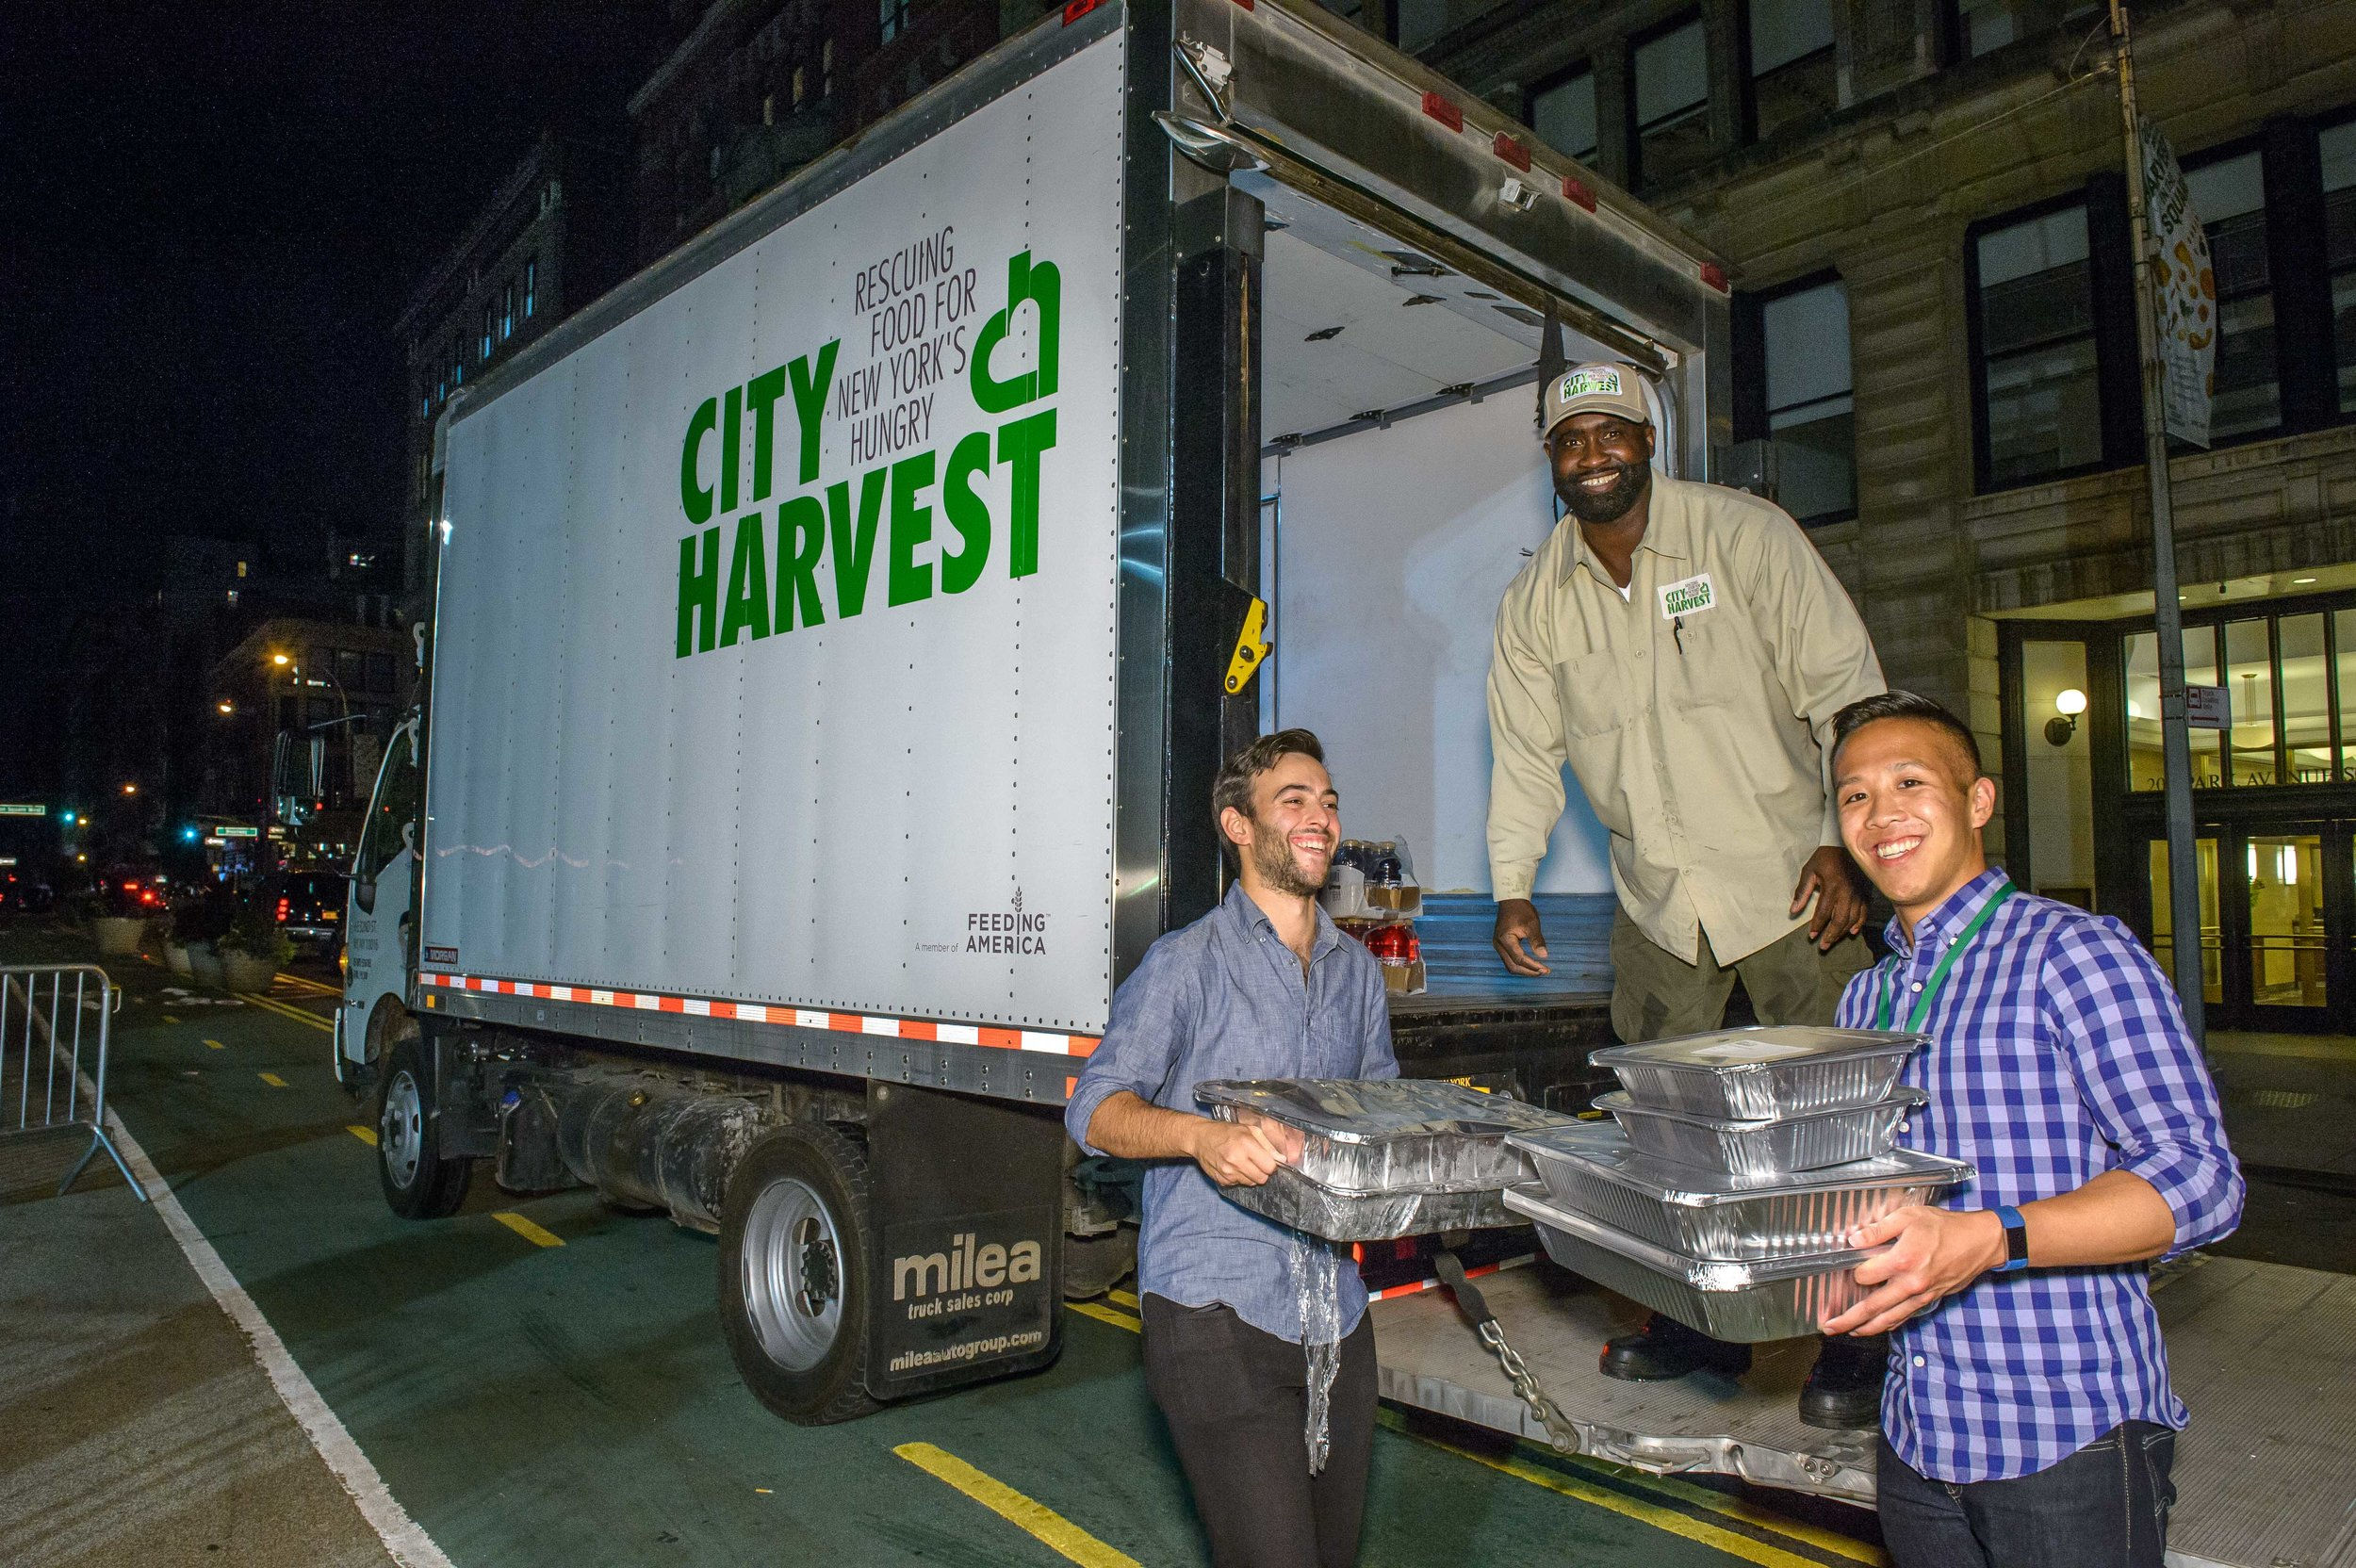 City Harvest rescued all event leftovers